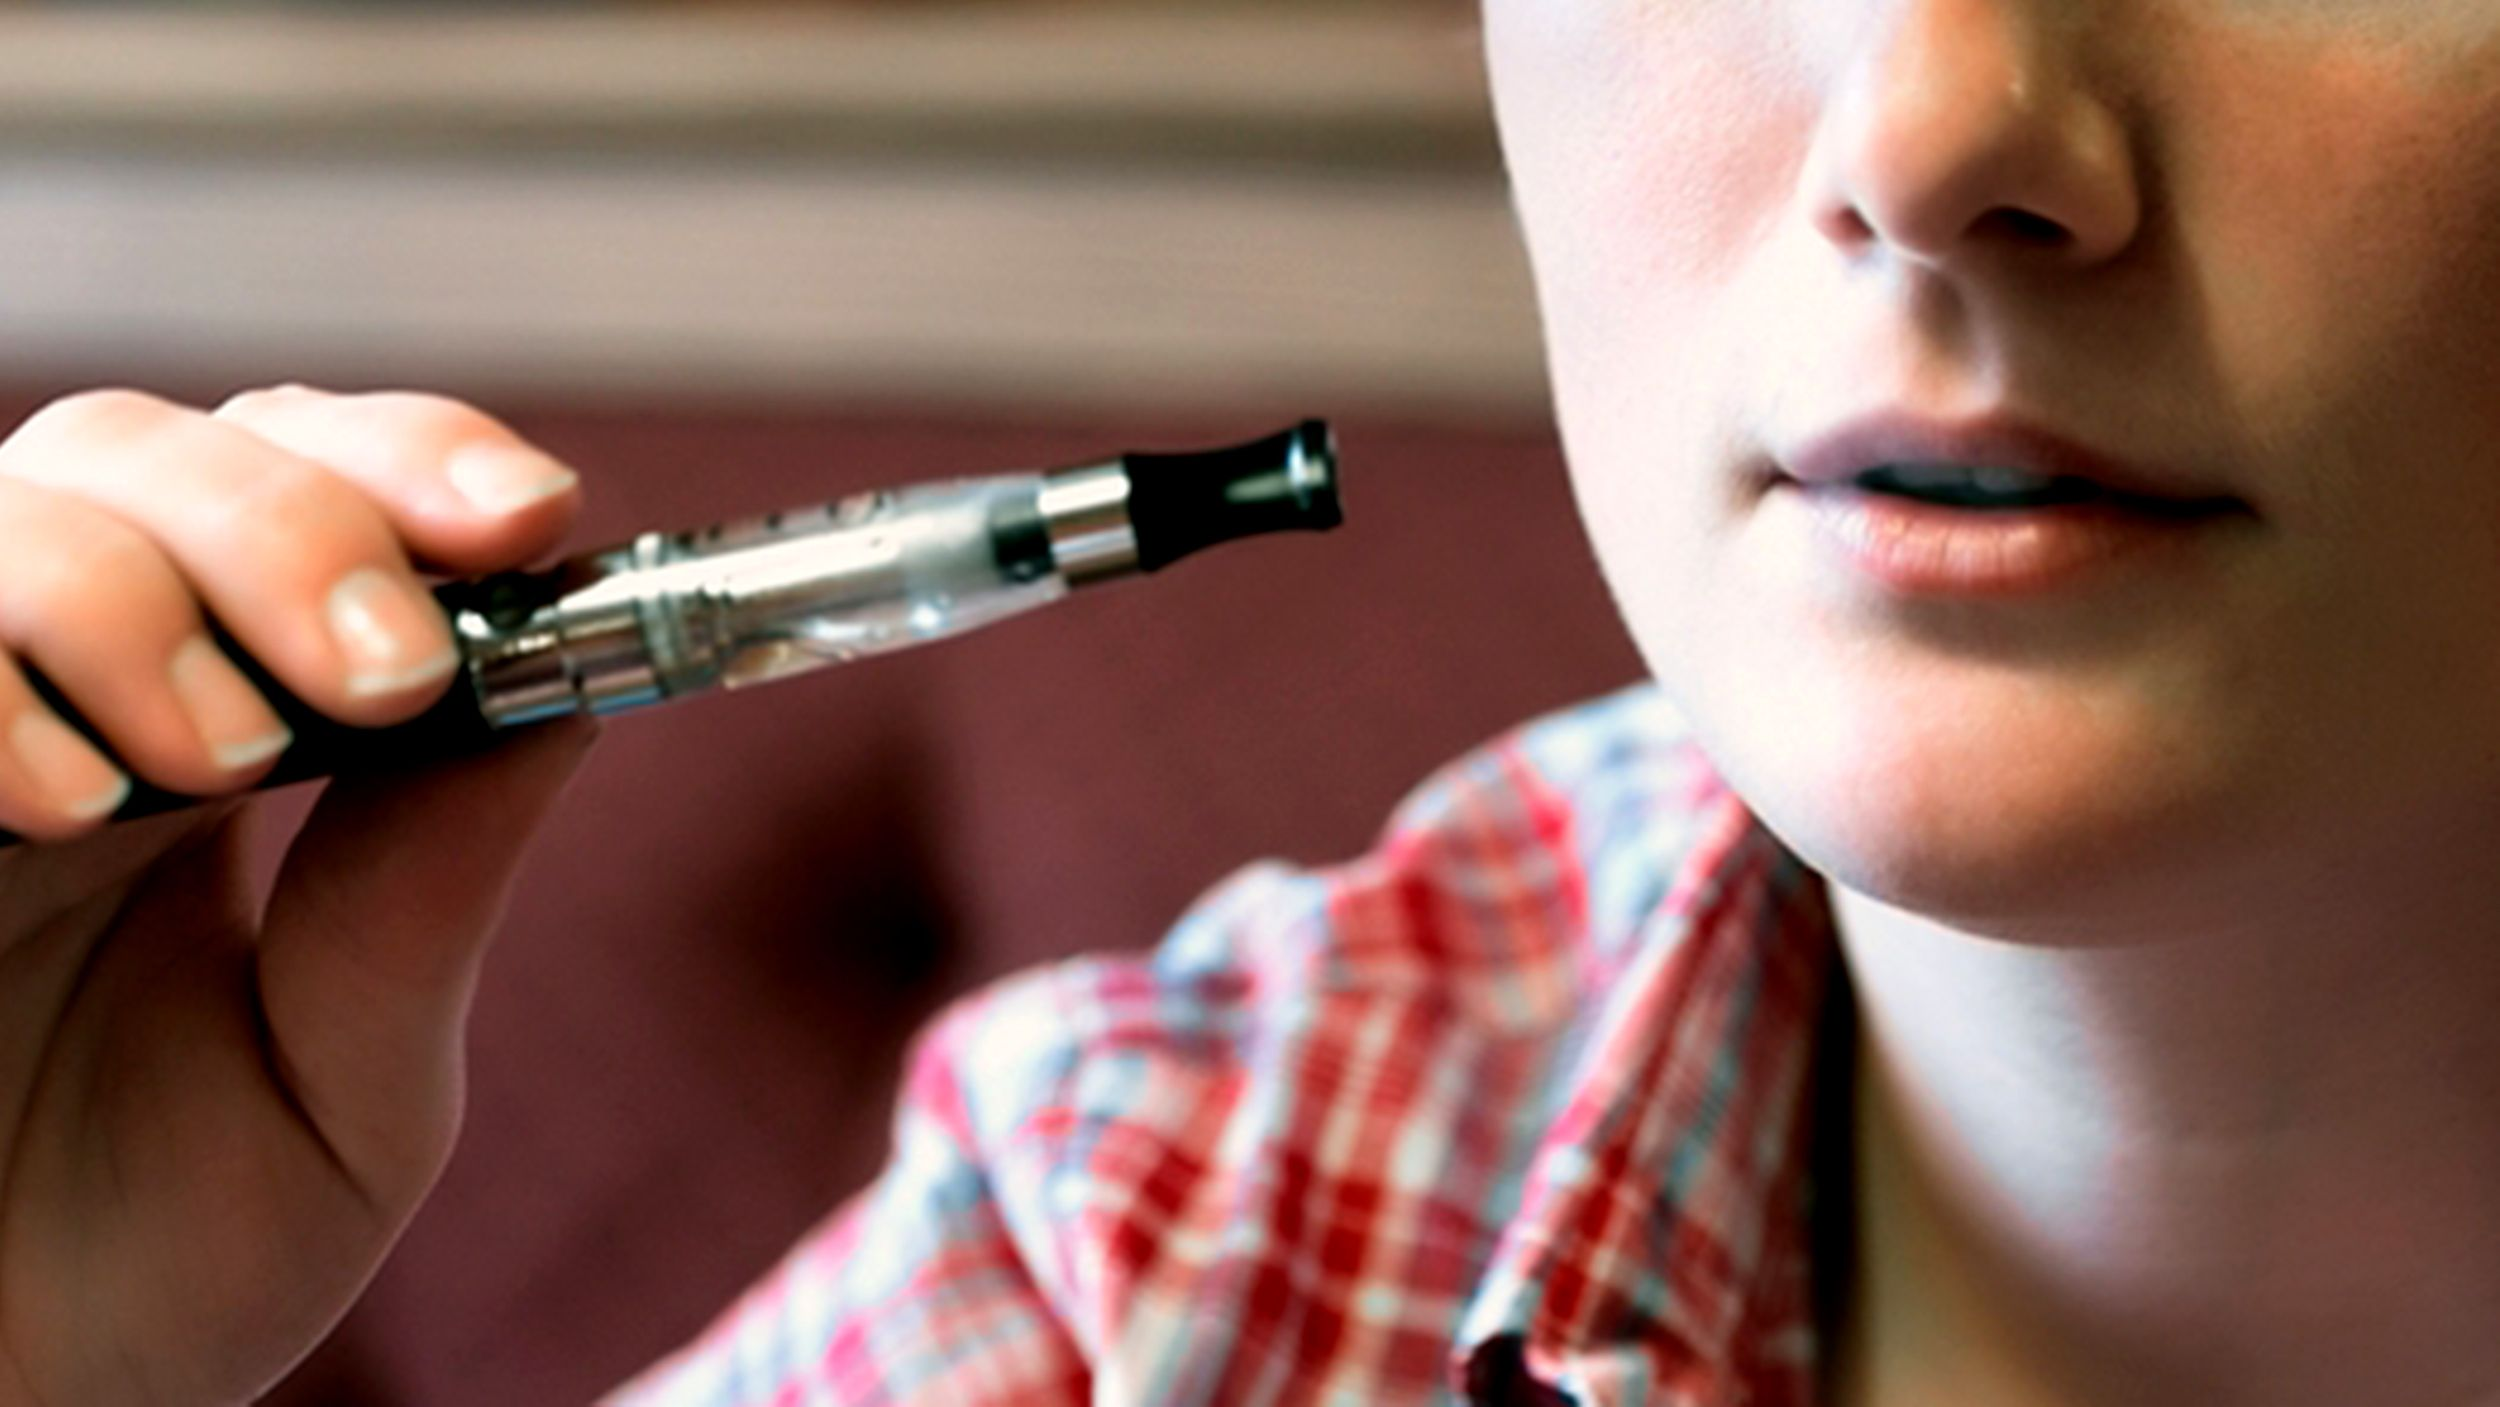 Cool factor: Why teens report positive feedback to using e-cigarettes